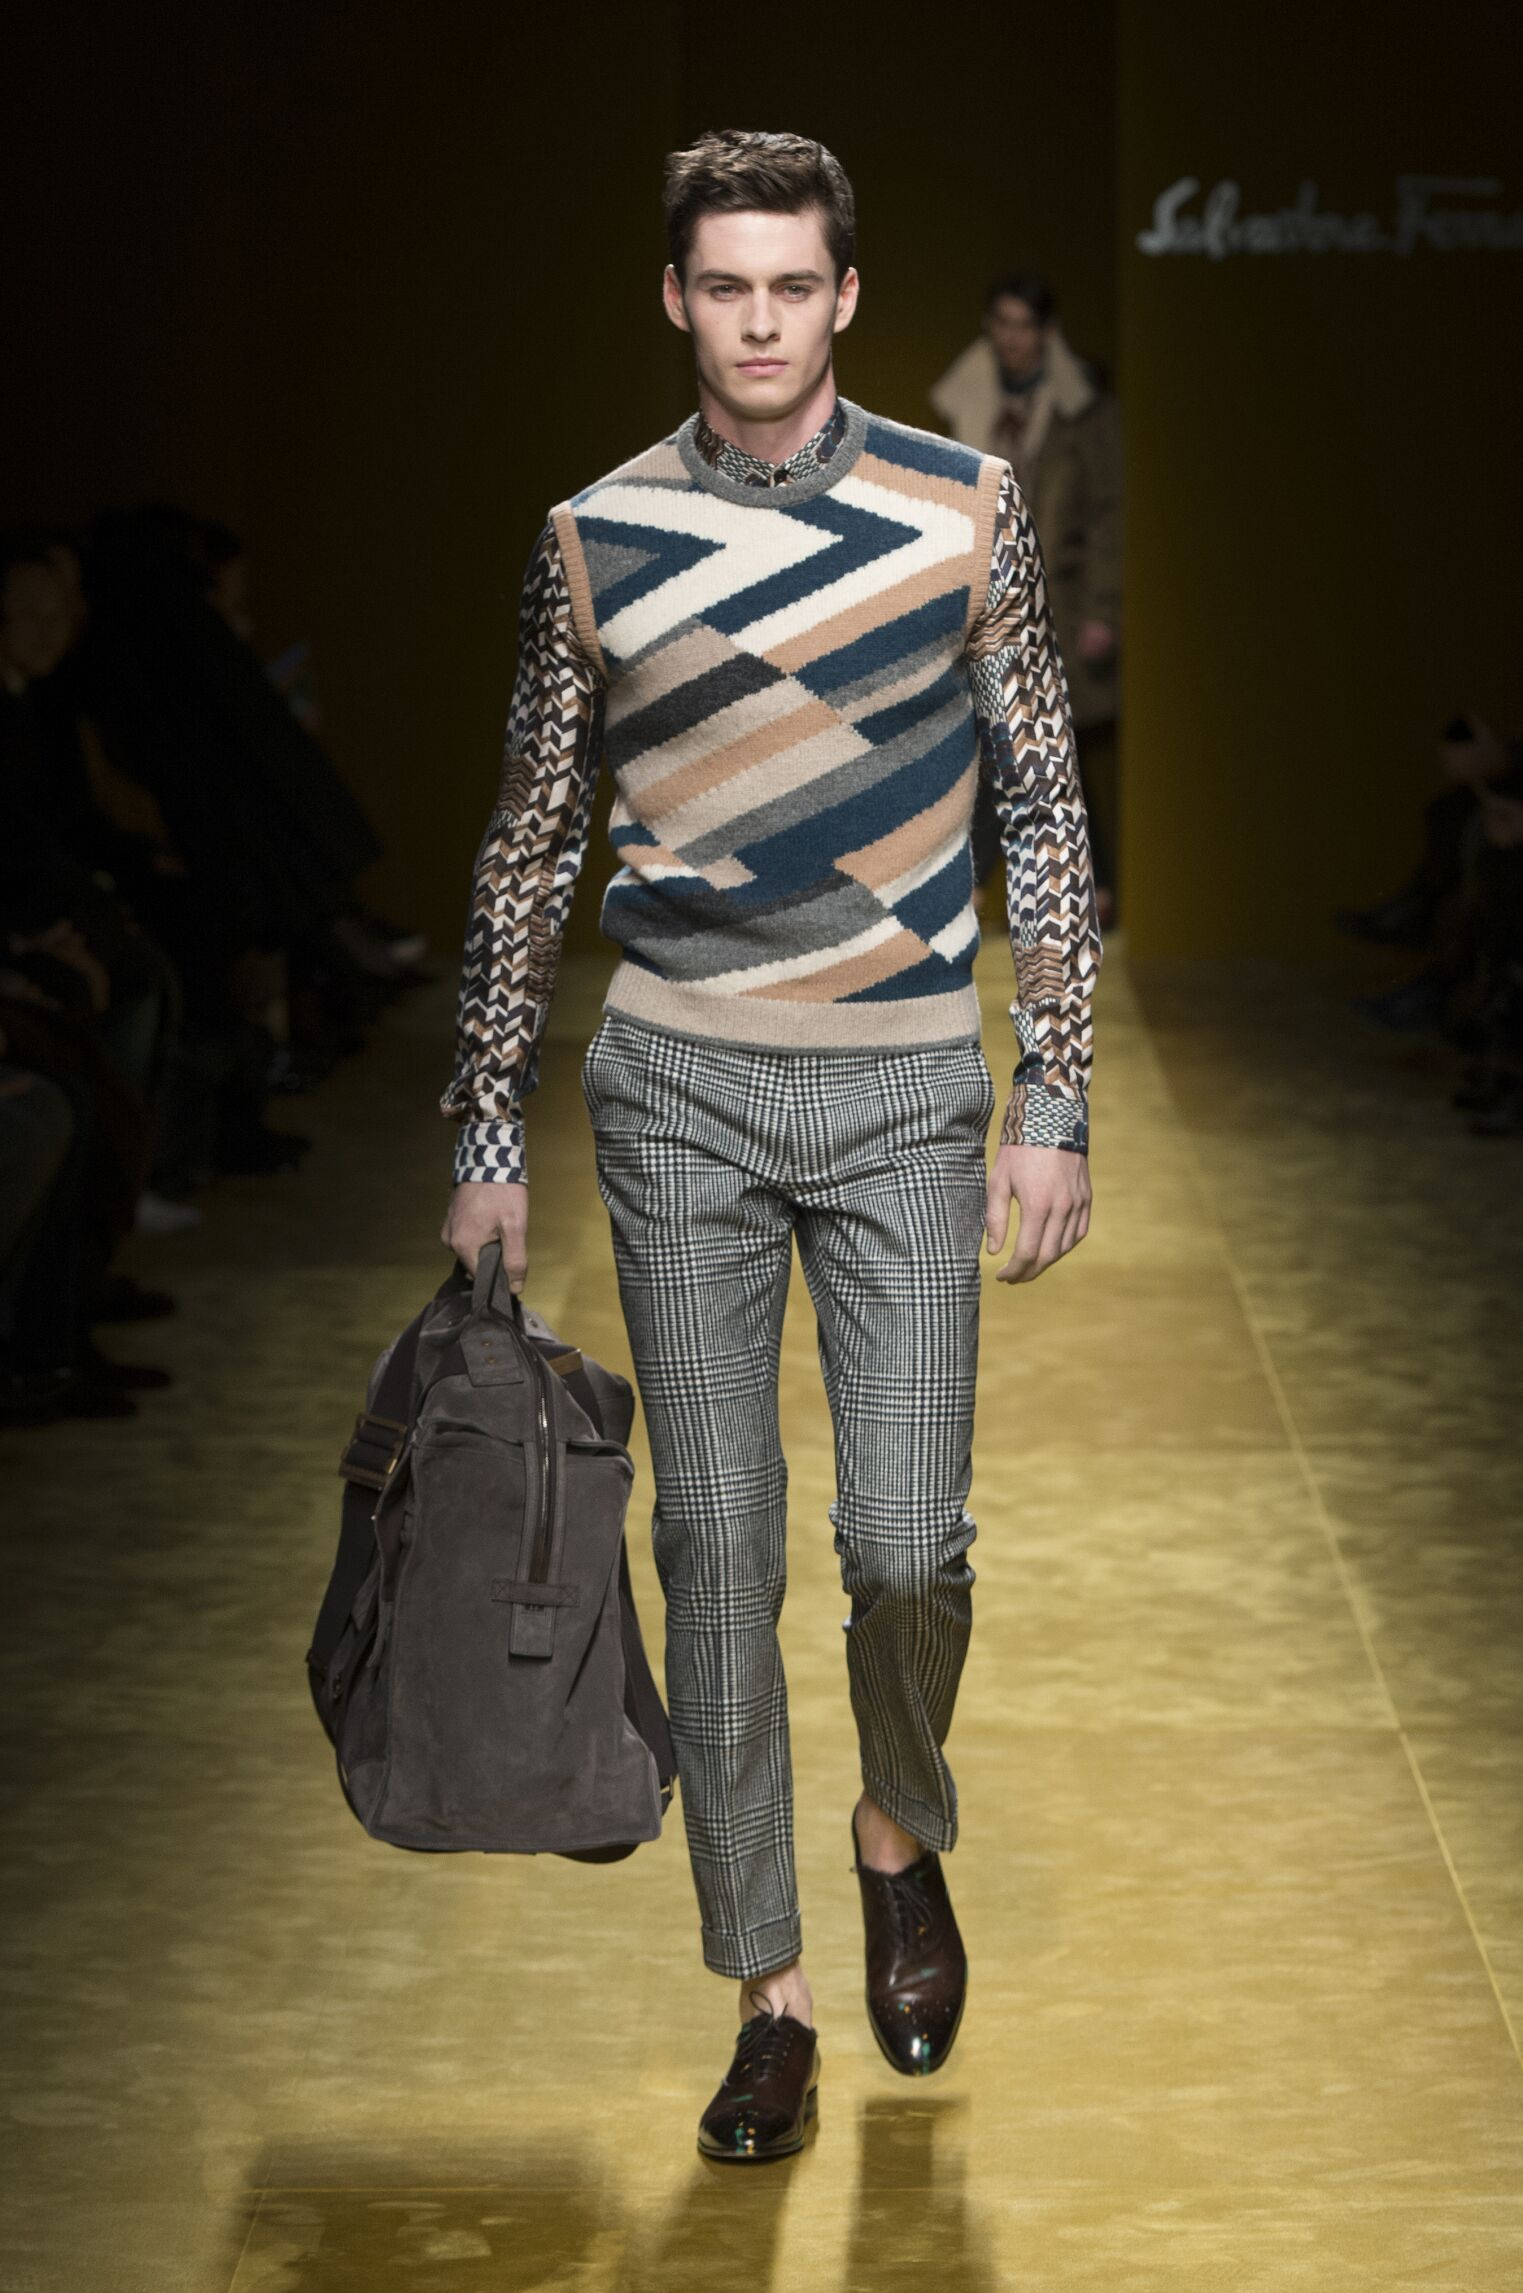 Salvatore Ferragamo Winter 2016-2017 Catwalk